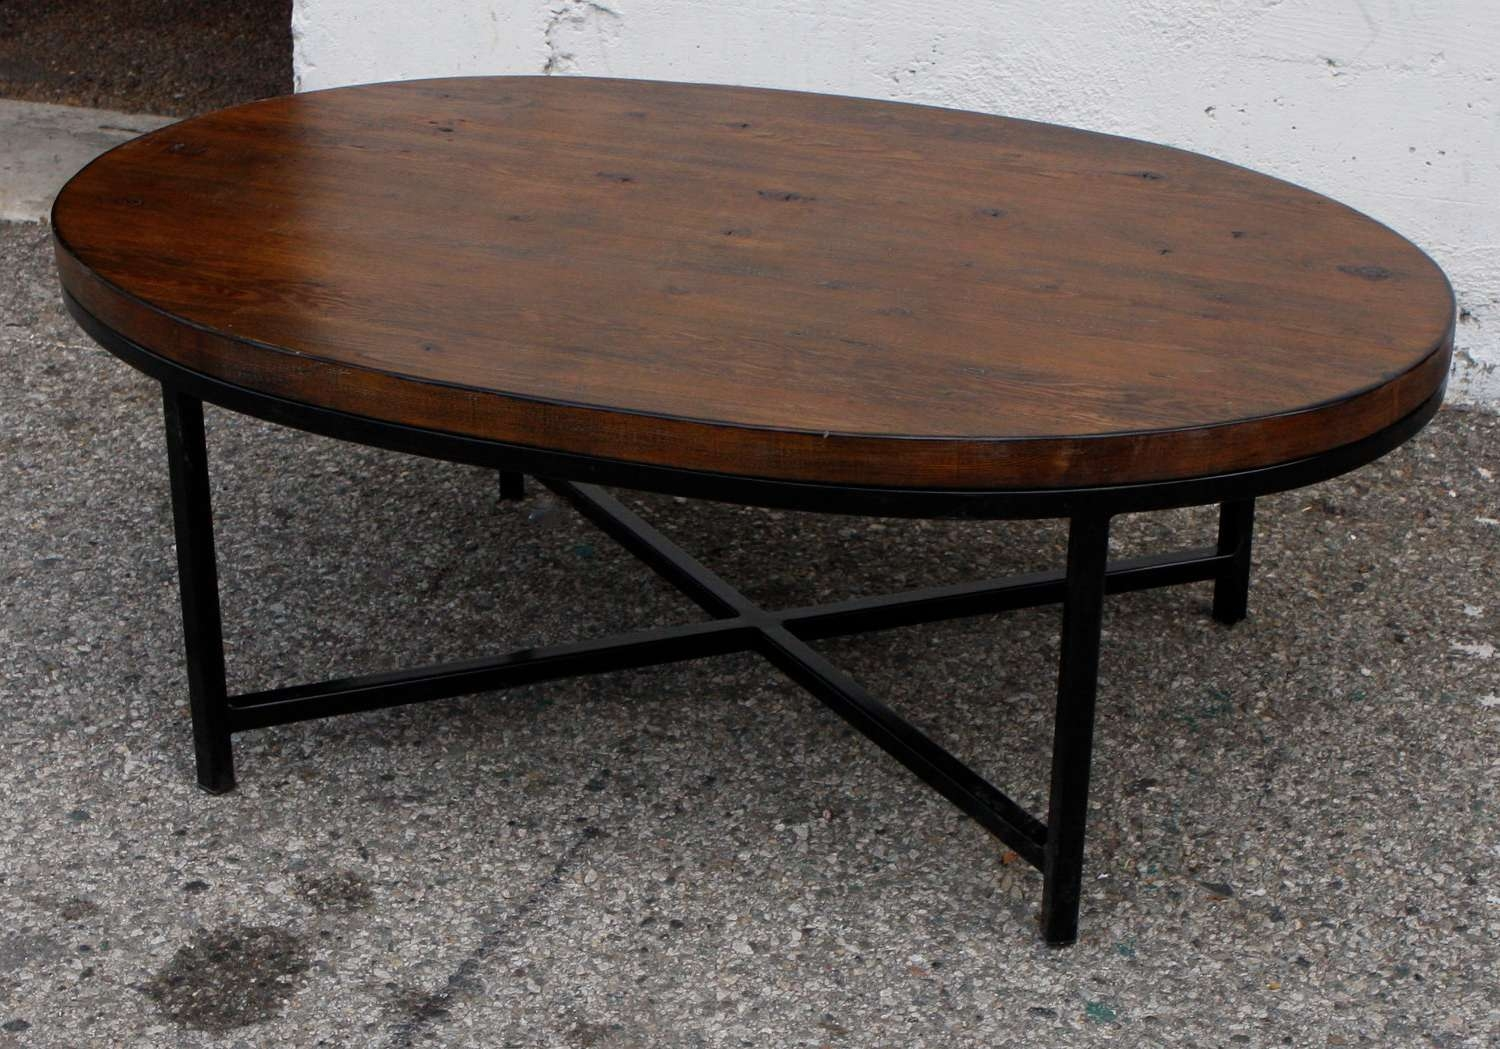 Coffee Tables : Oval Wood Coffee Table With Metal Legs Square Pertaining To Fashionable Oval Glass And Wood Coffee Tables (View 4 of 20)